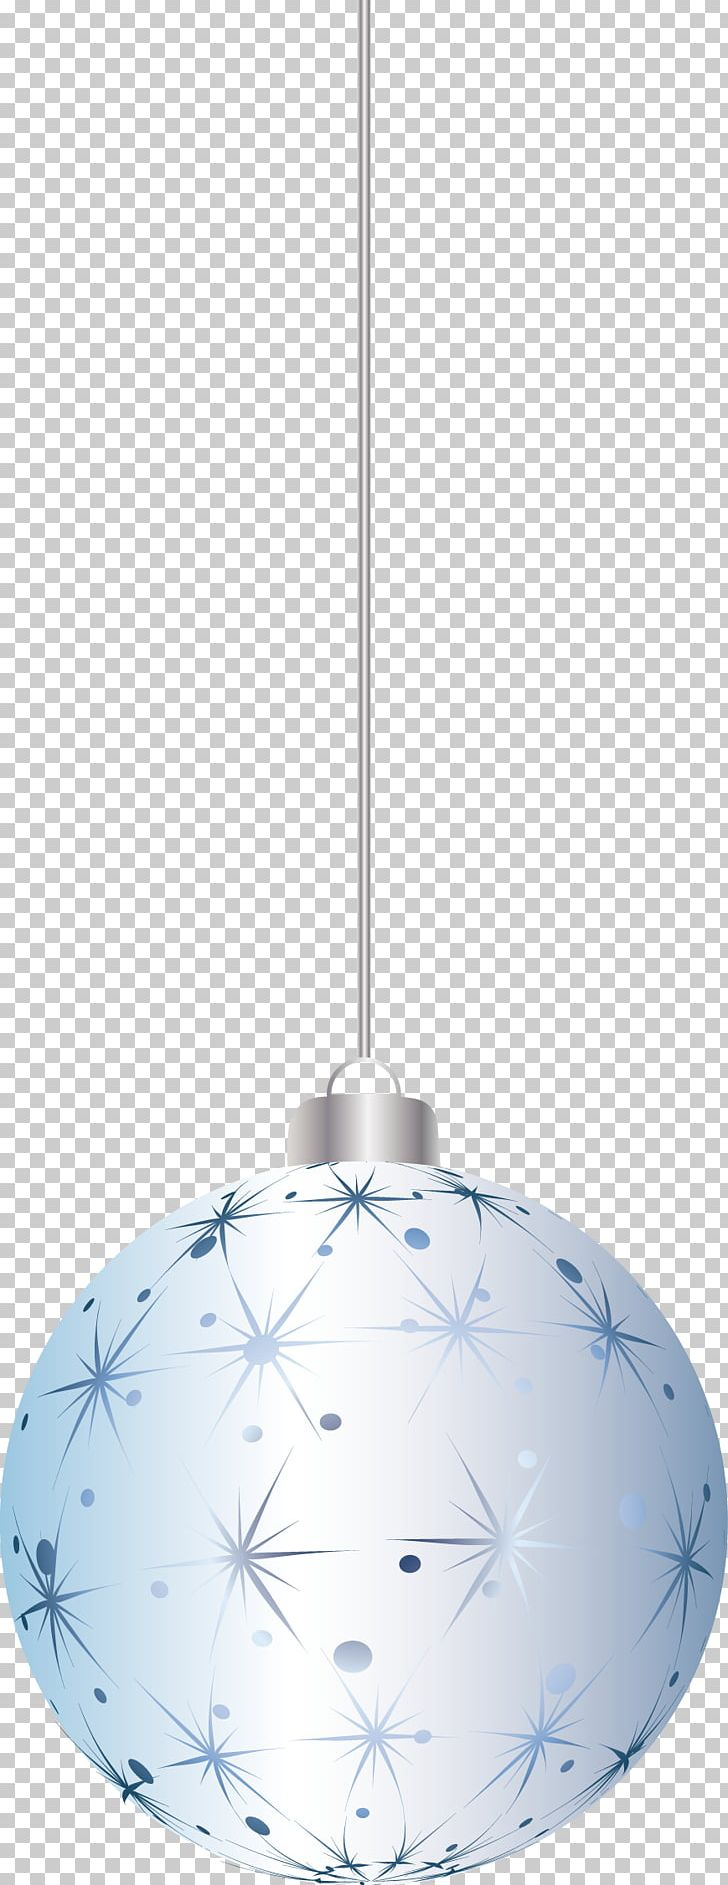 Christmas Ornament New Year The Elder Scrolls V: Skyrim Bubble Shooter Christmas Balls PNG, Clipart, Bubble Shooter Christmas Balls, Ceiling Fixture, Christmas, Christmas Ornament, Elder Scrolls Free PNG Download